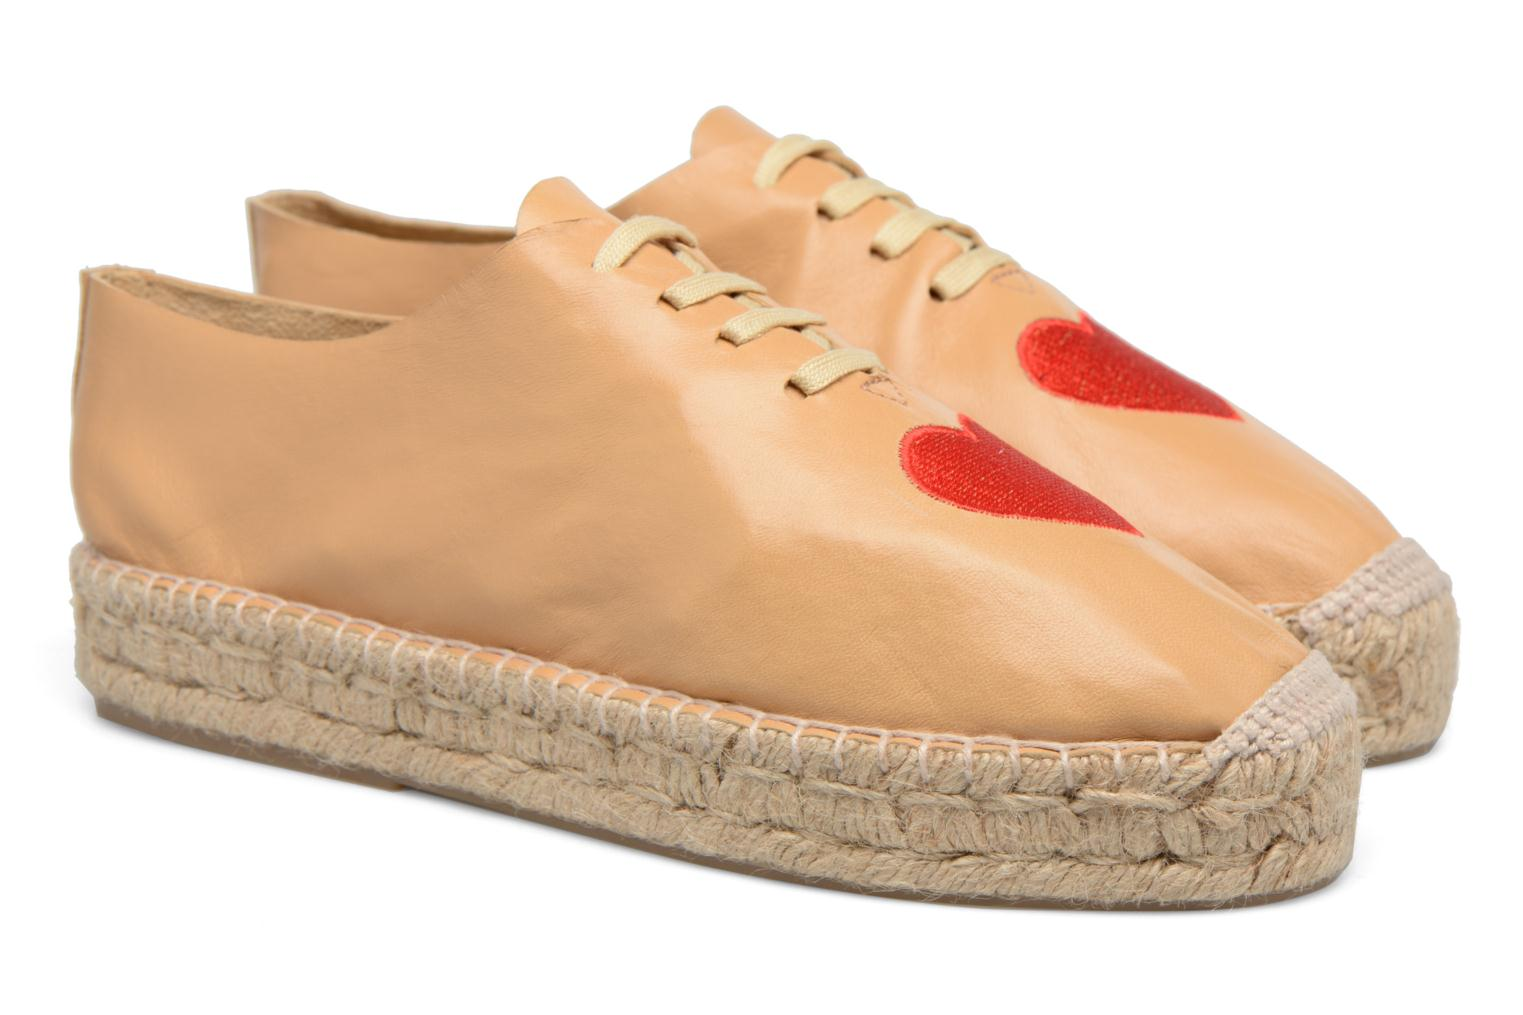 Espadrilles Apologie Adrienne Brown 3/4 view